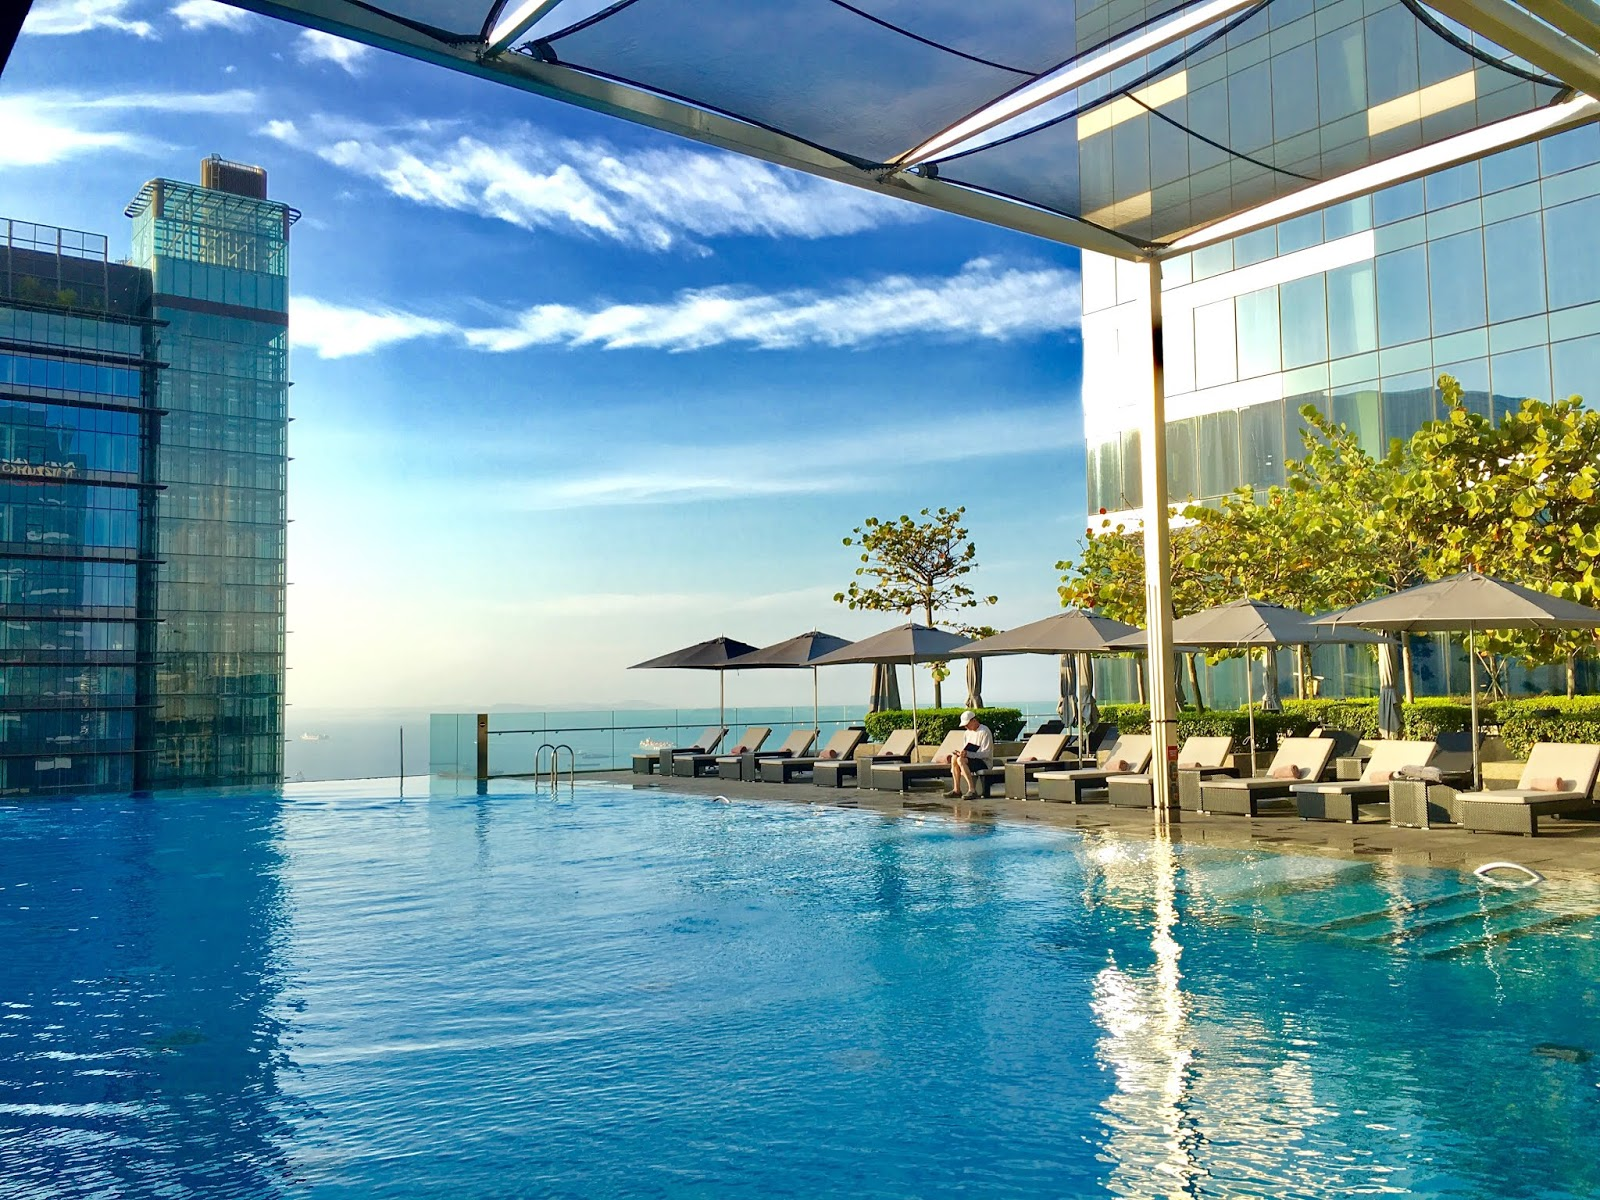 Infinity pool singapore wallpaper Iphone Think May Have Mentioned The Westin Singapore Has An Infinity Pool Kitchen Decor The Westin Singapore Infinity Pool And Beyond Juanita Ng